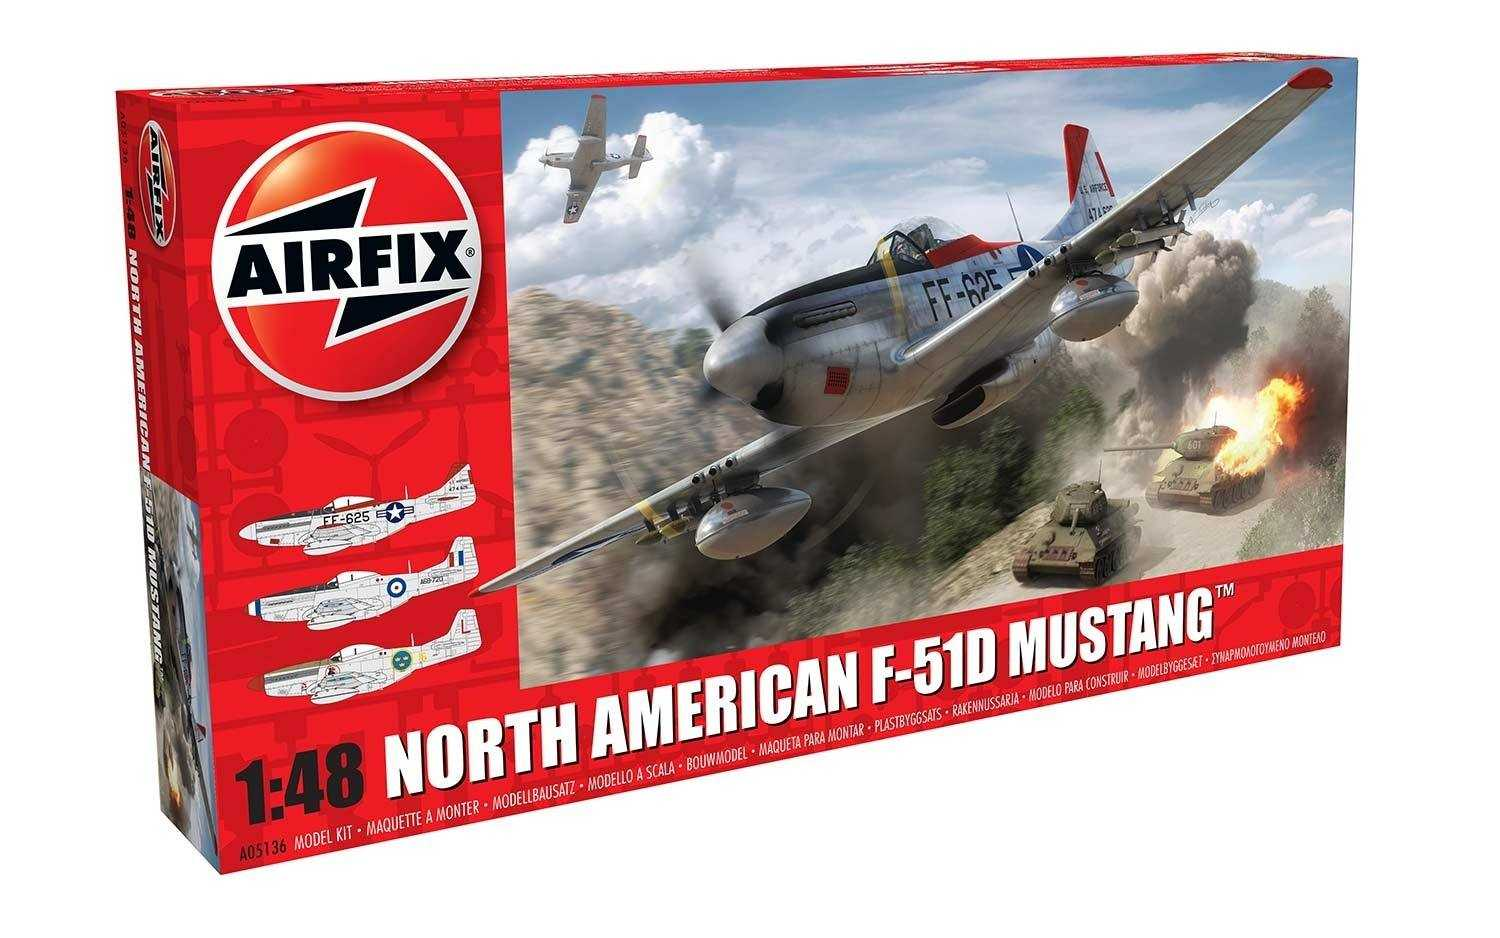 1:48 North American F-51D Mustang